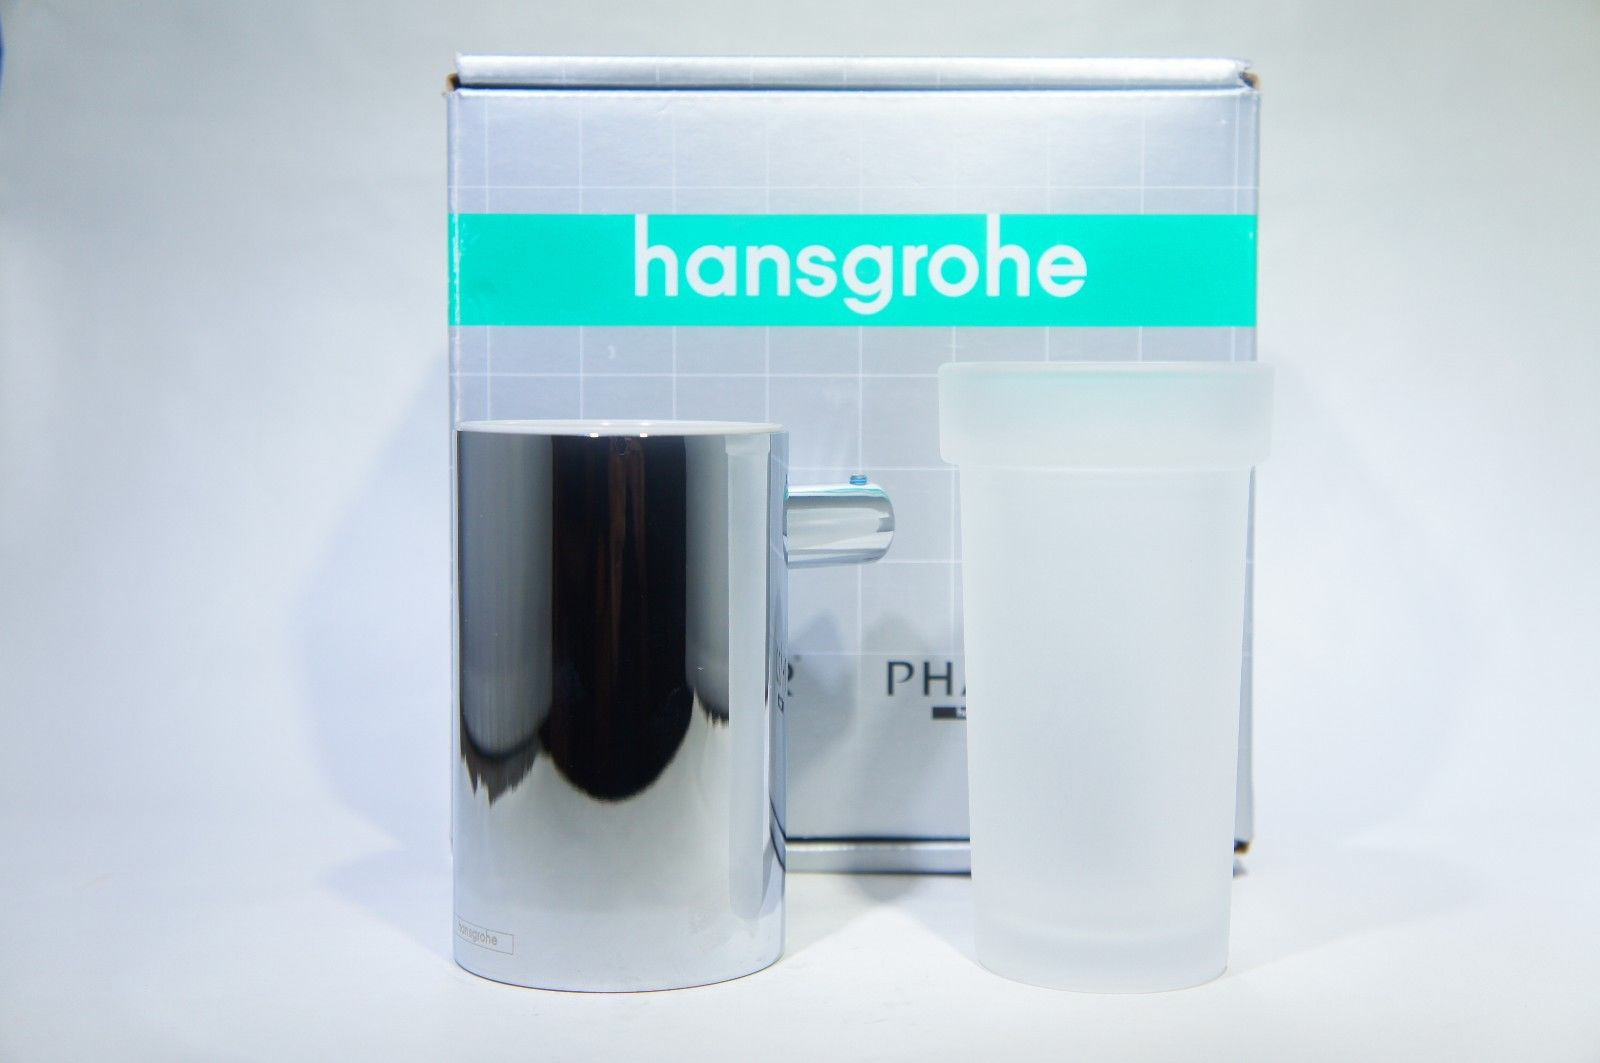 Hansgrohe 40518 E and S Accessories Toothbrush Holder with Frosted Glass